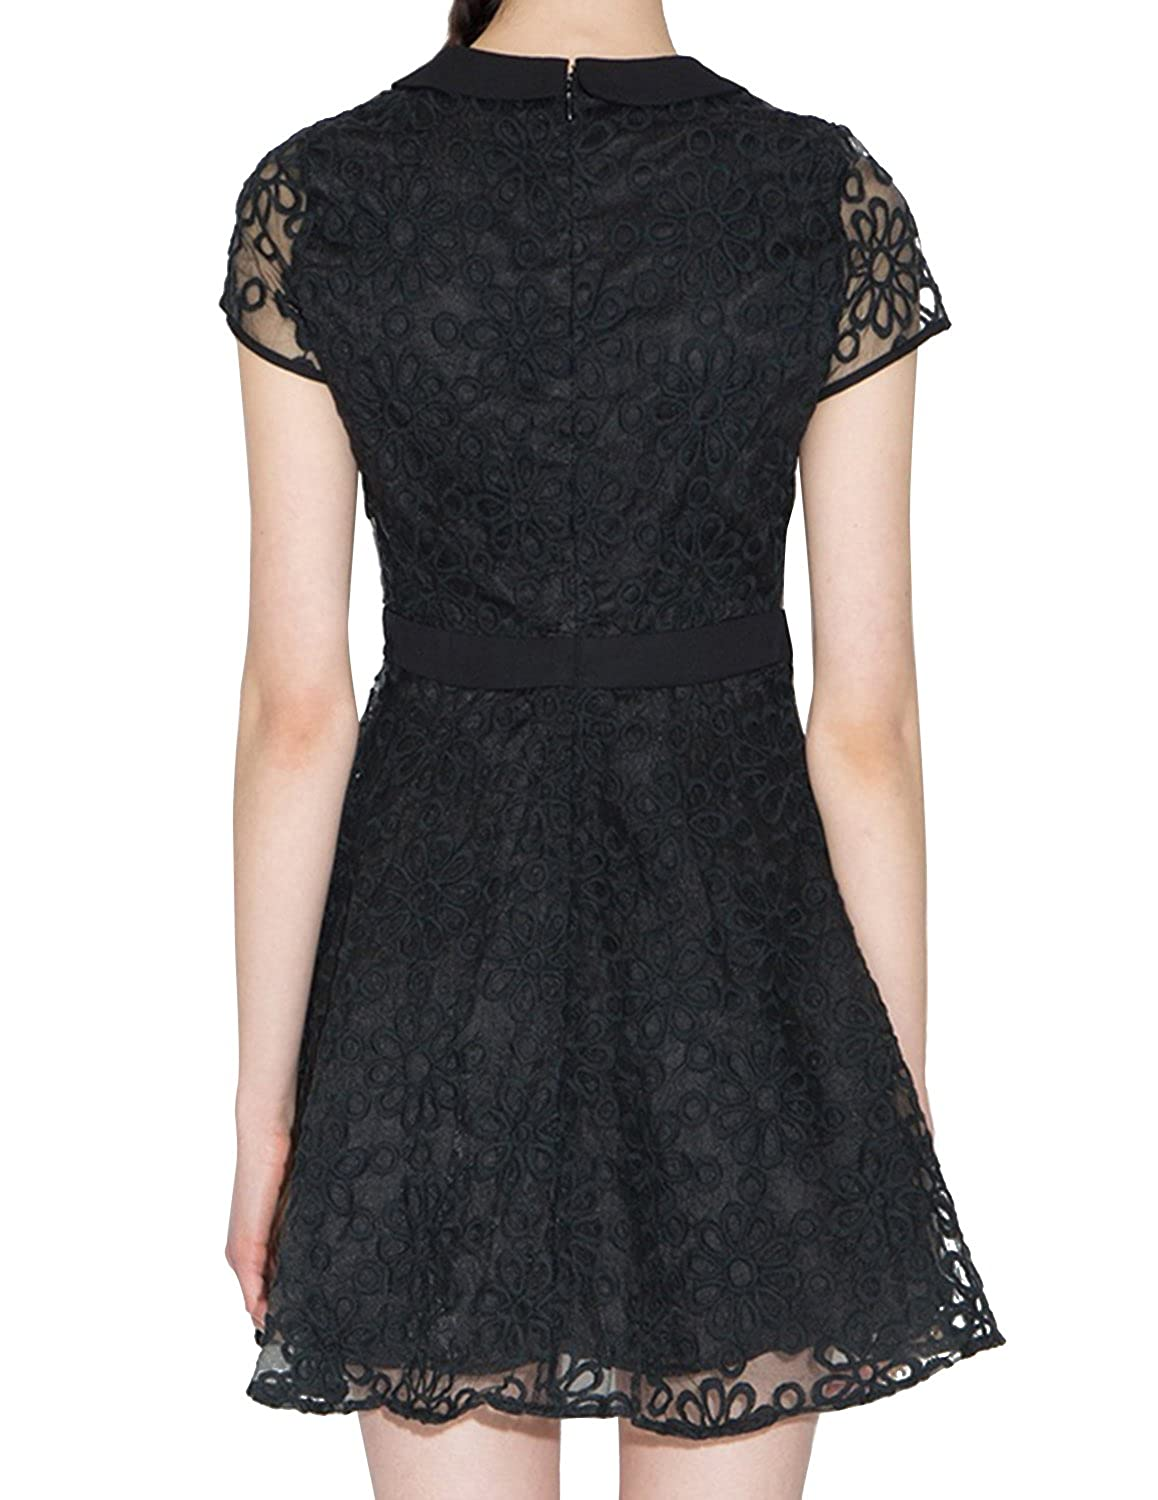 Amazon.com: HaoDuoYi Womens Vintage Sheer Lace Hollow Out A-Line Cocktail Party Mini Dress: Clothing